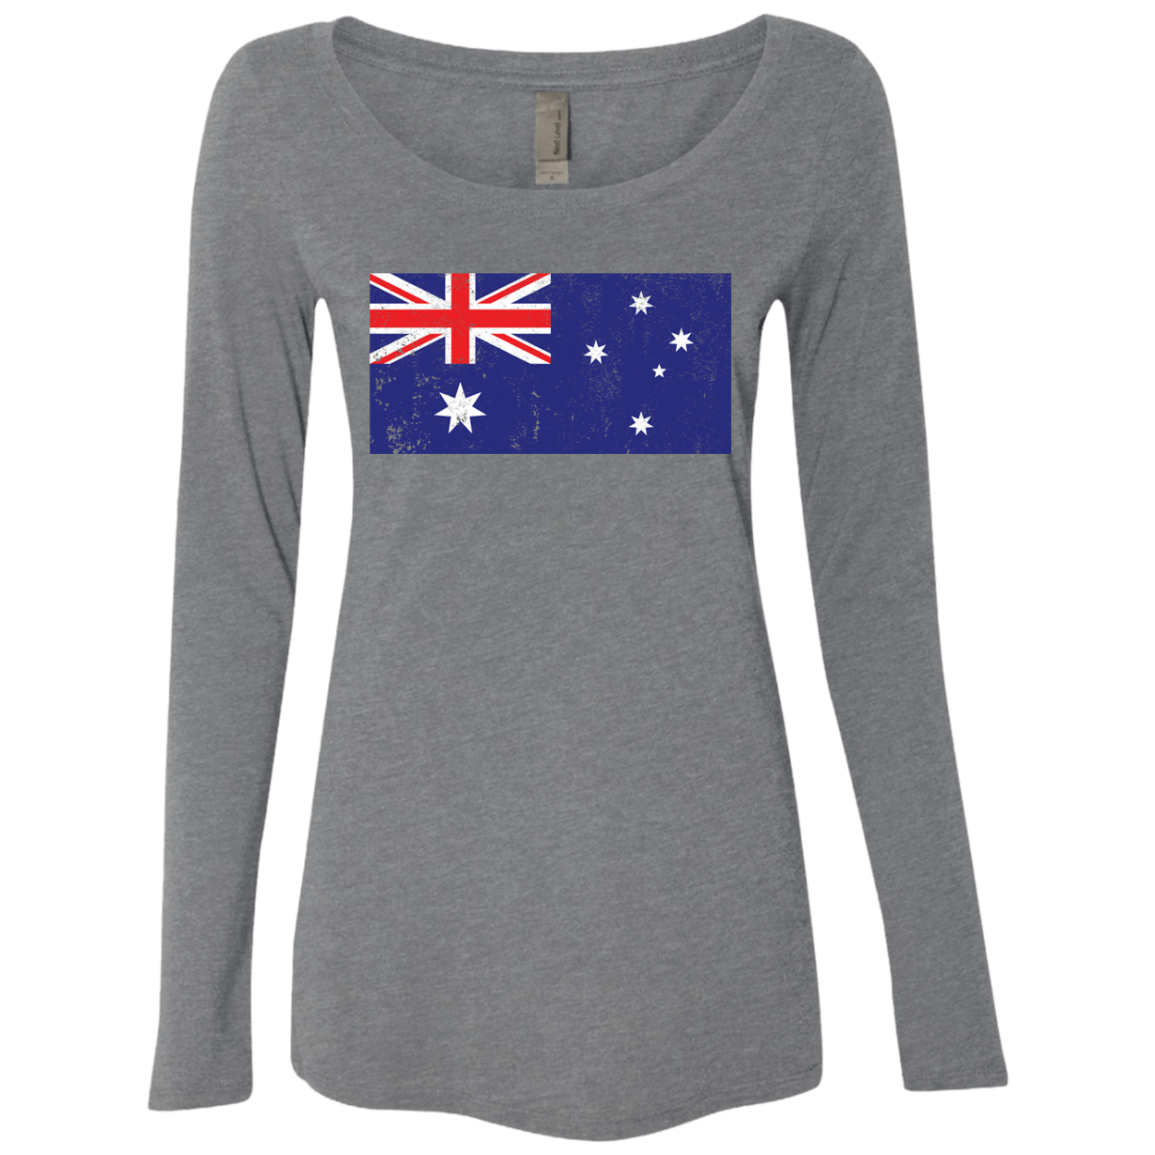 Australia Women's Long Sleeve Tee